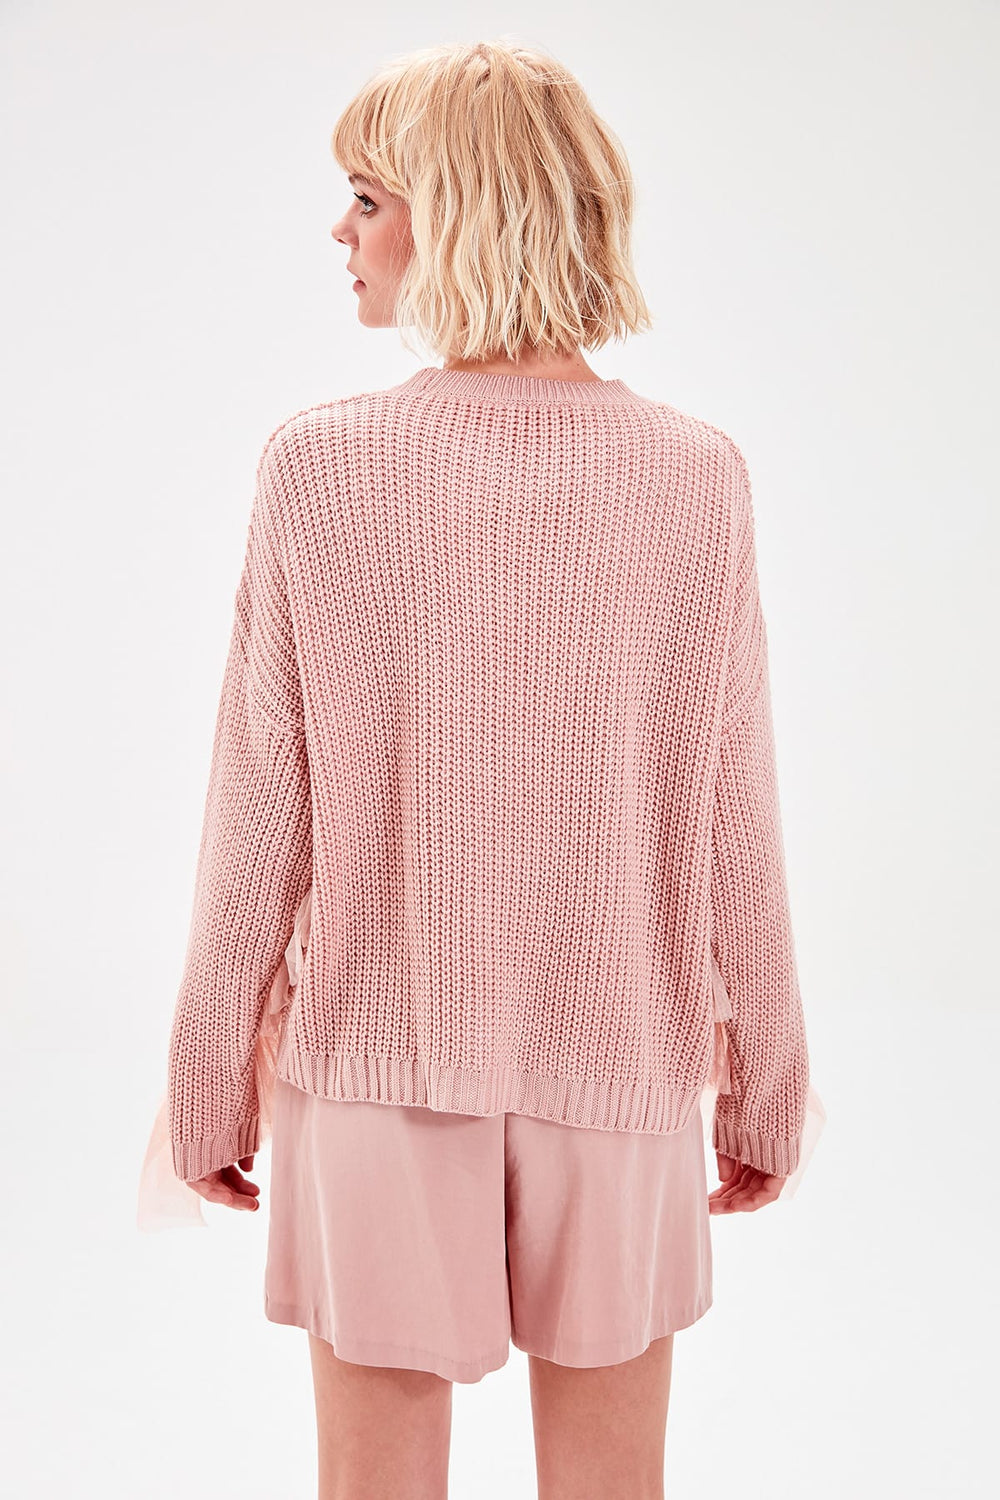 Miss Zut Miss Zut WOMEN-Powder Tulle Detailed Knitwear Sweater Miss Zut &CO